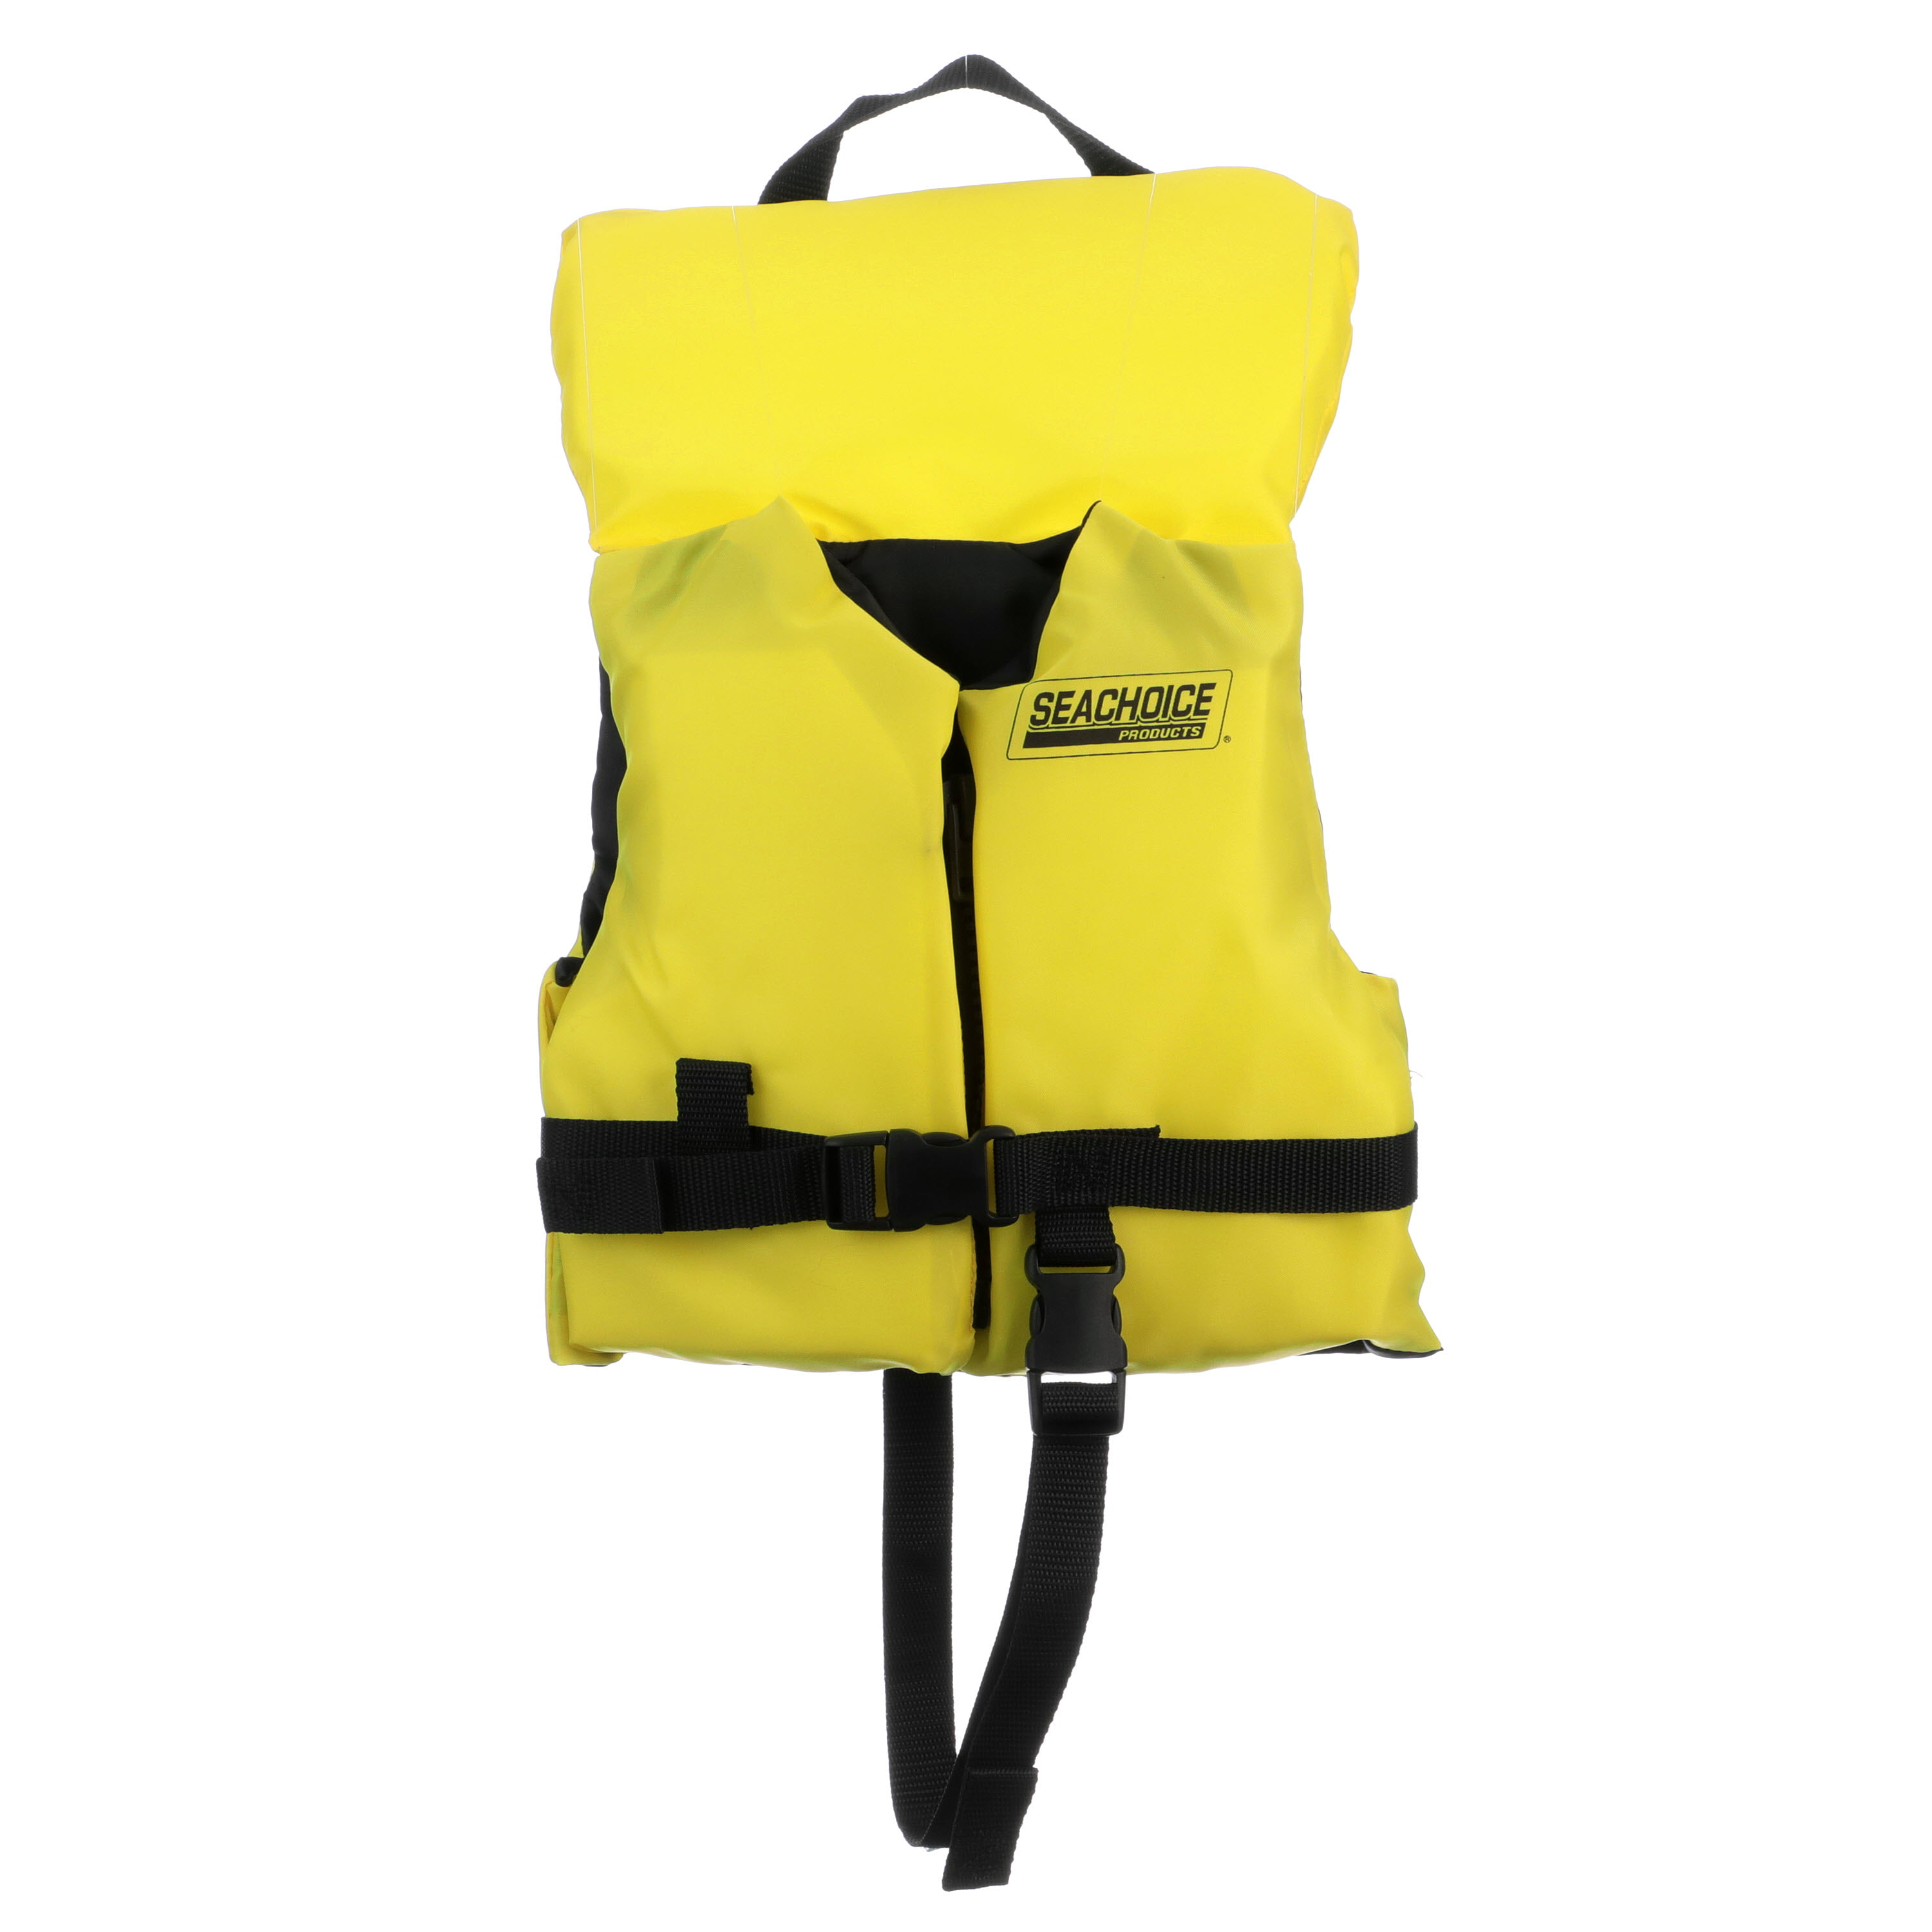 Seachoice 86500 Type Iii Life Jacket Adjustable General Purpose Vest Bright Yellow Infant Up To 30 Pounds Walmart Com Walmart Com